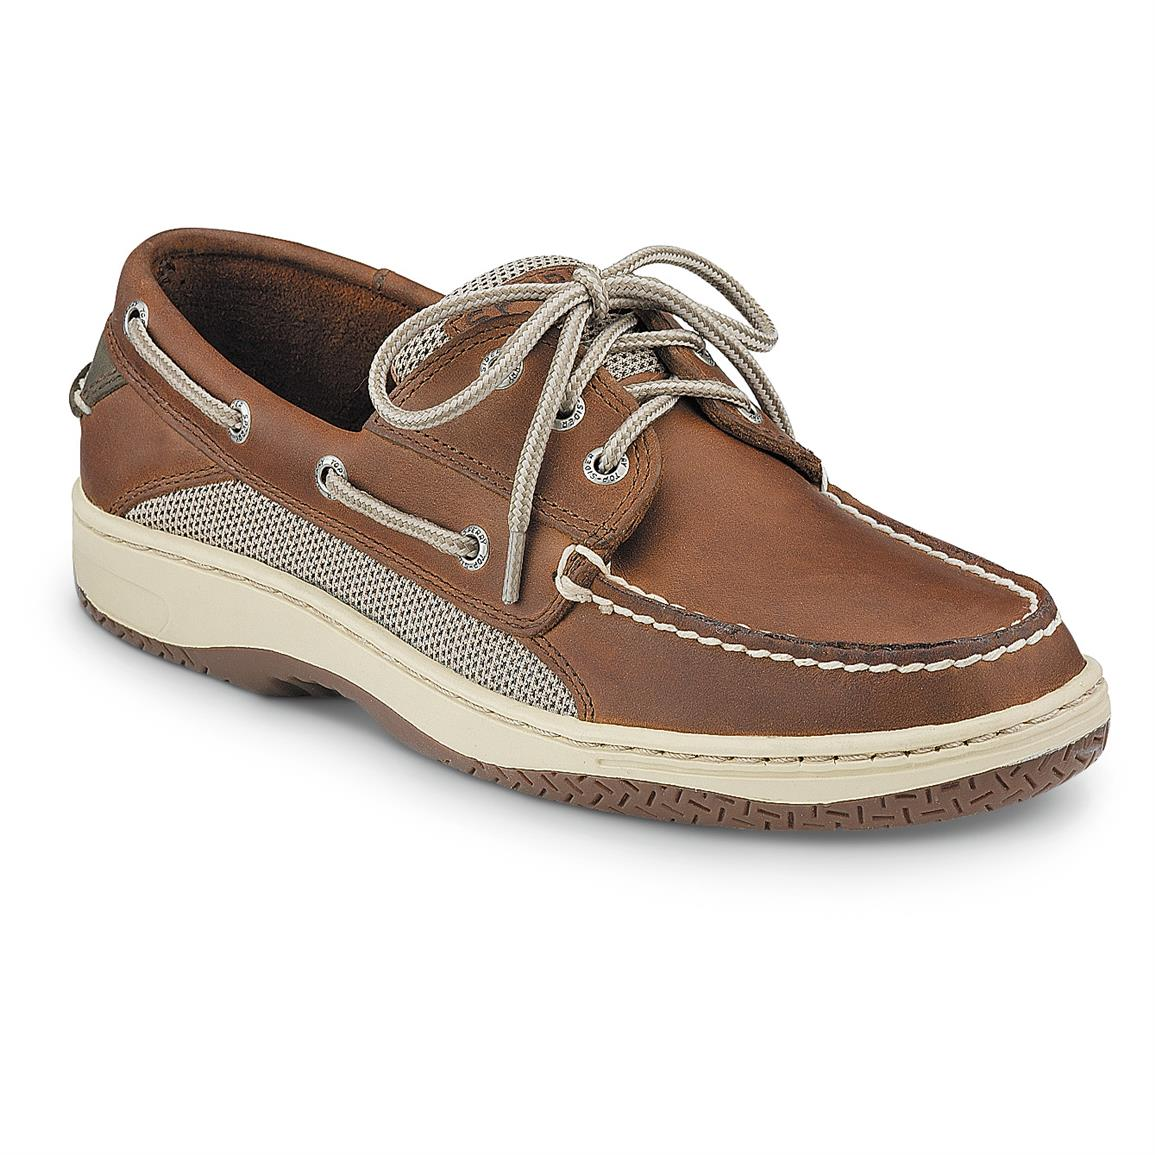 Sperry Men's Billfish 3-Eye Boat Shoes, Dark Tan